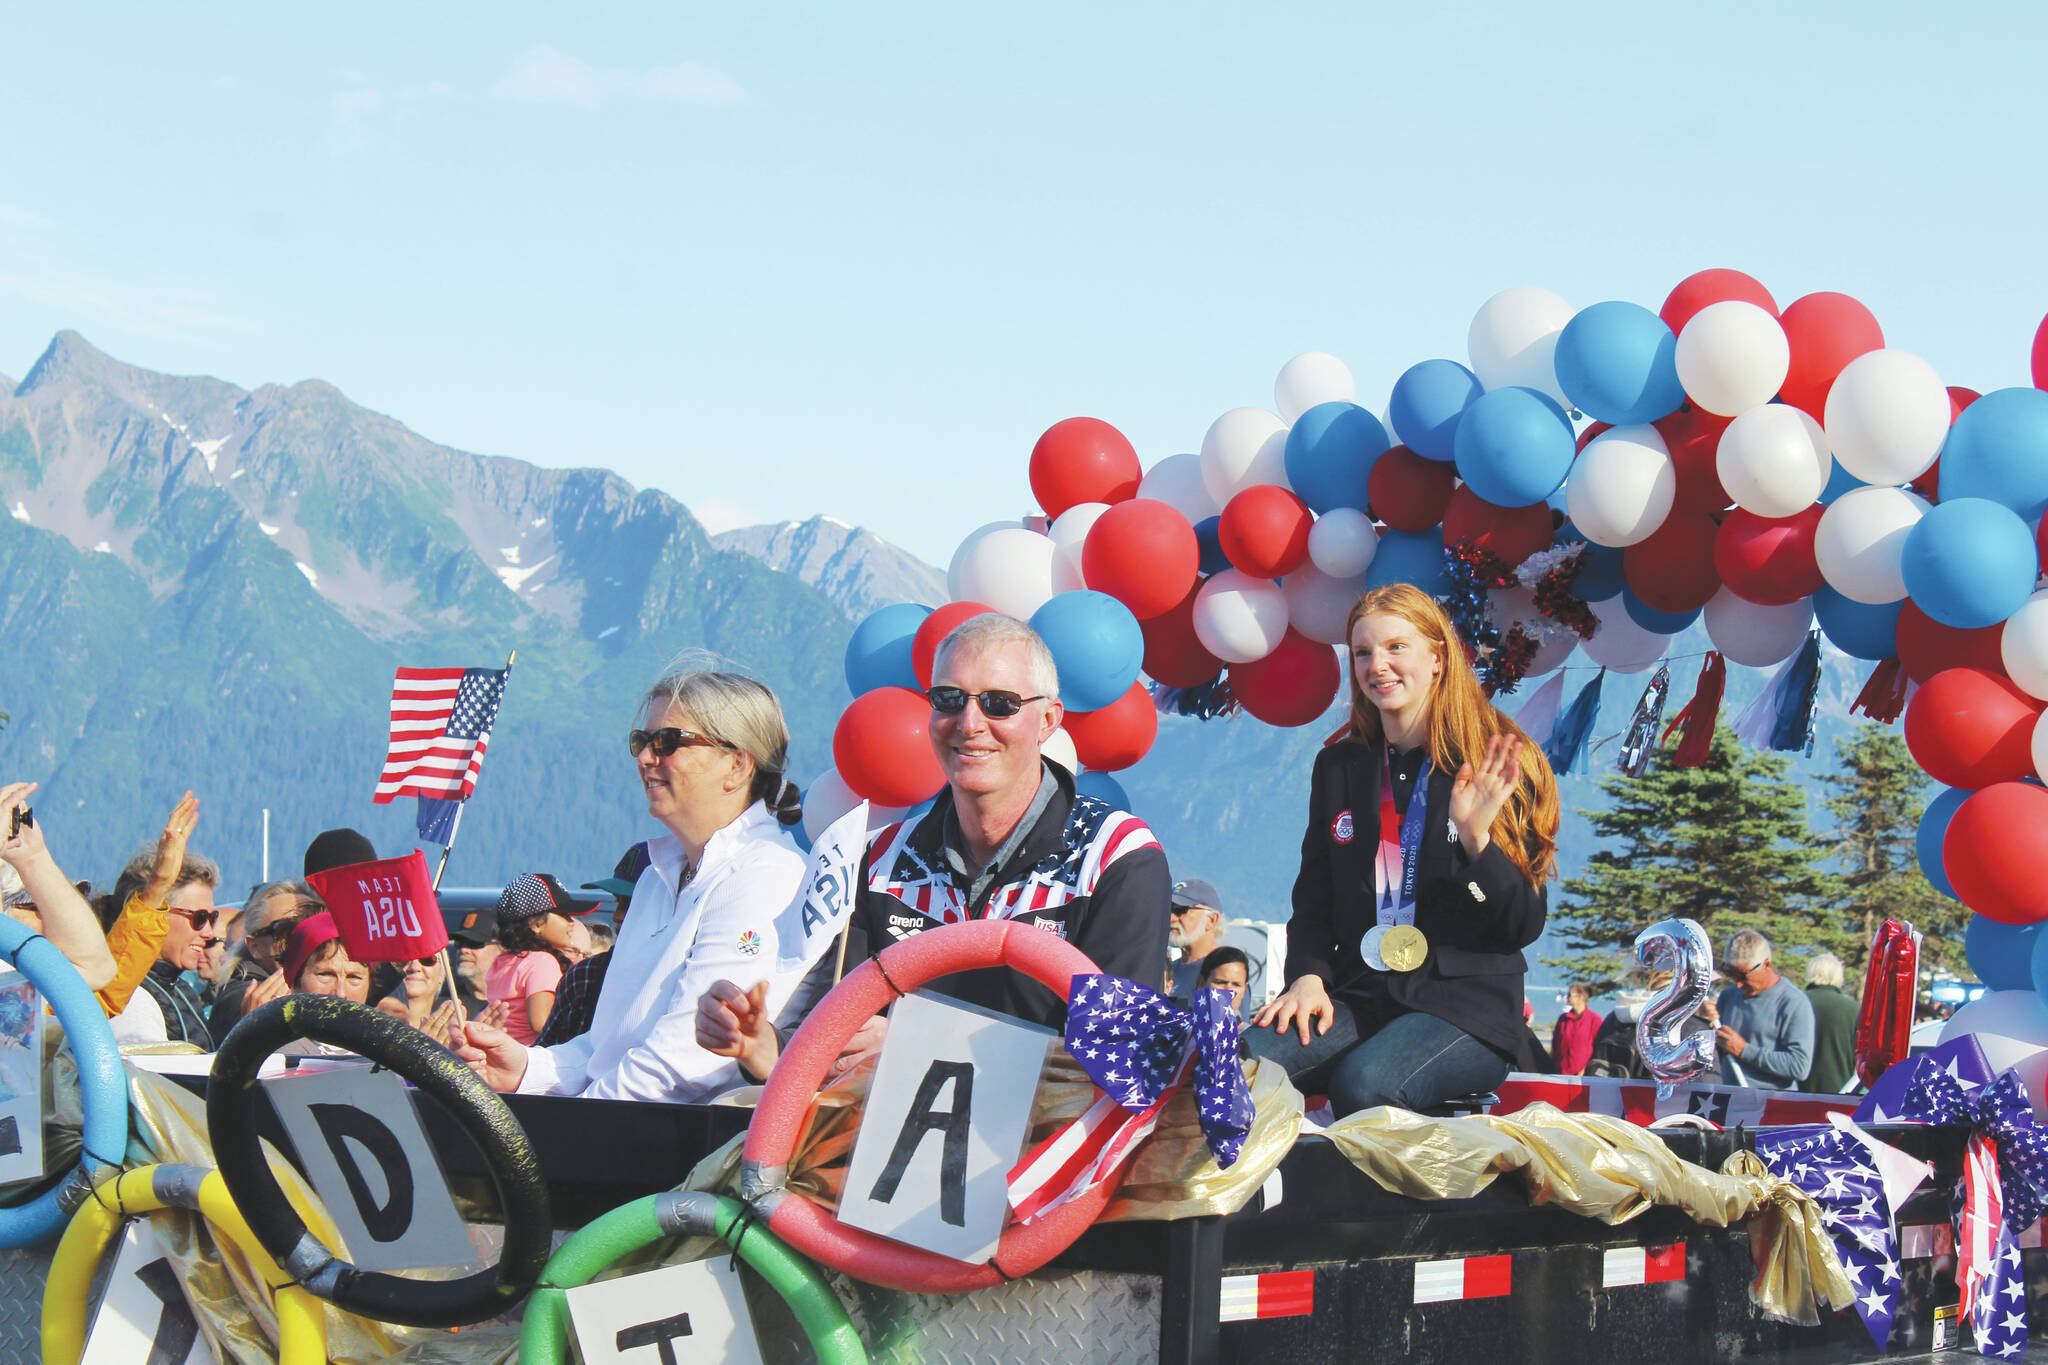 Olympic gold medalist Lydia Jacoby waves to the crowd in Seward during her celebratory parade on Thursday, August 5, 2021. (Ashlyn O'Hara/Peninsula Clarion)